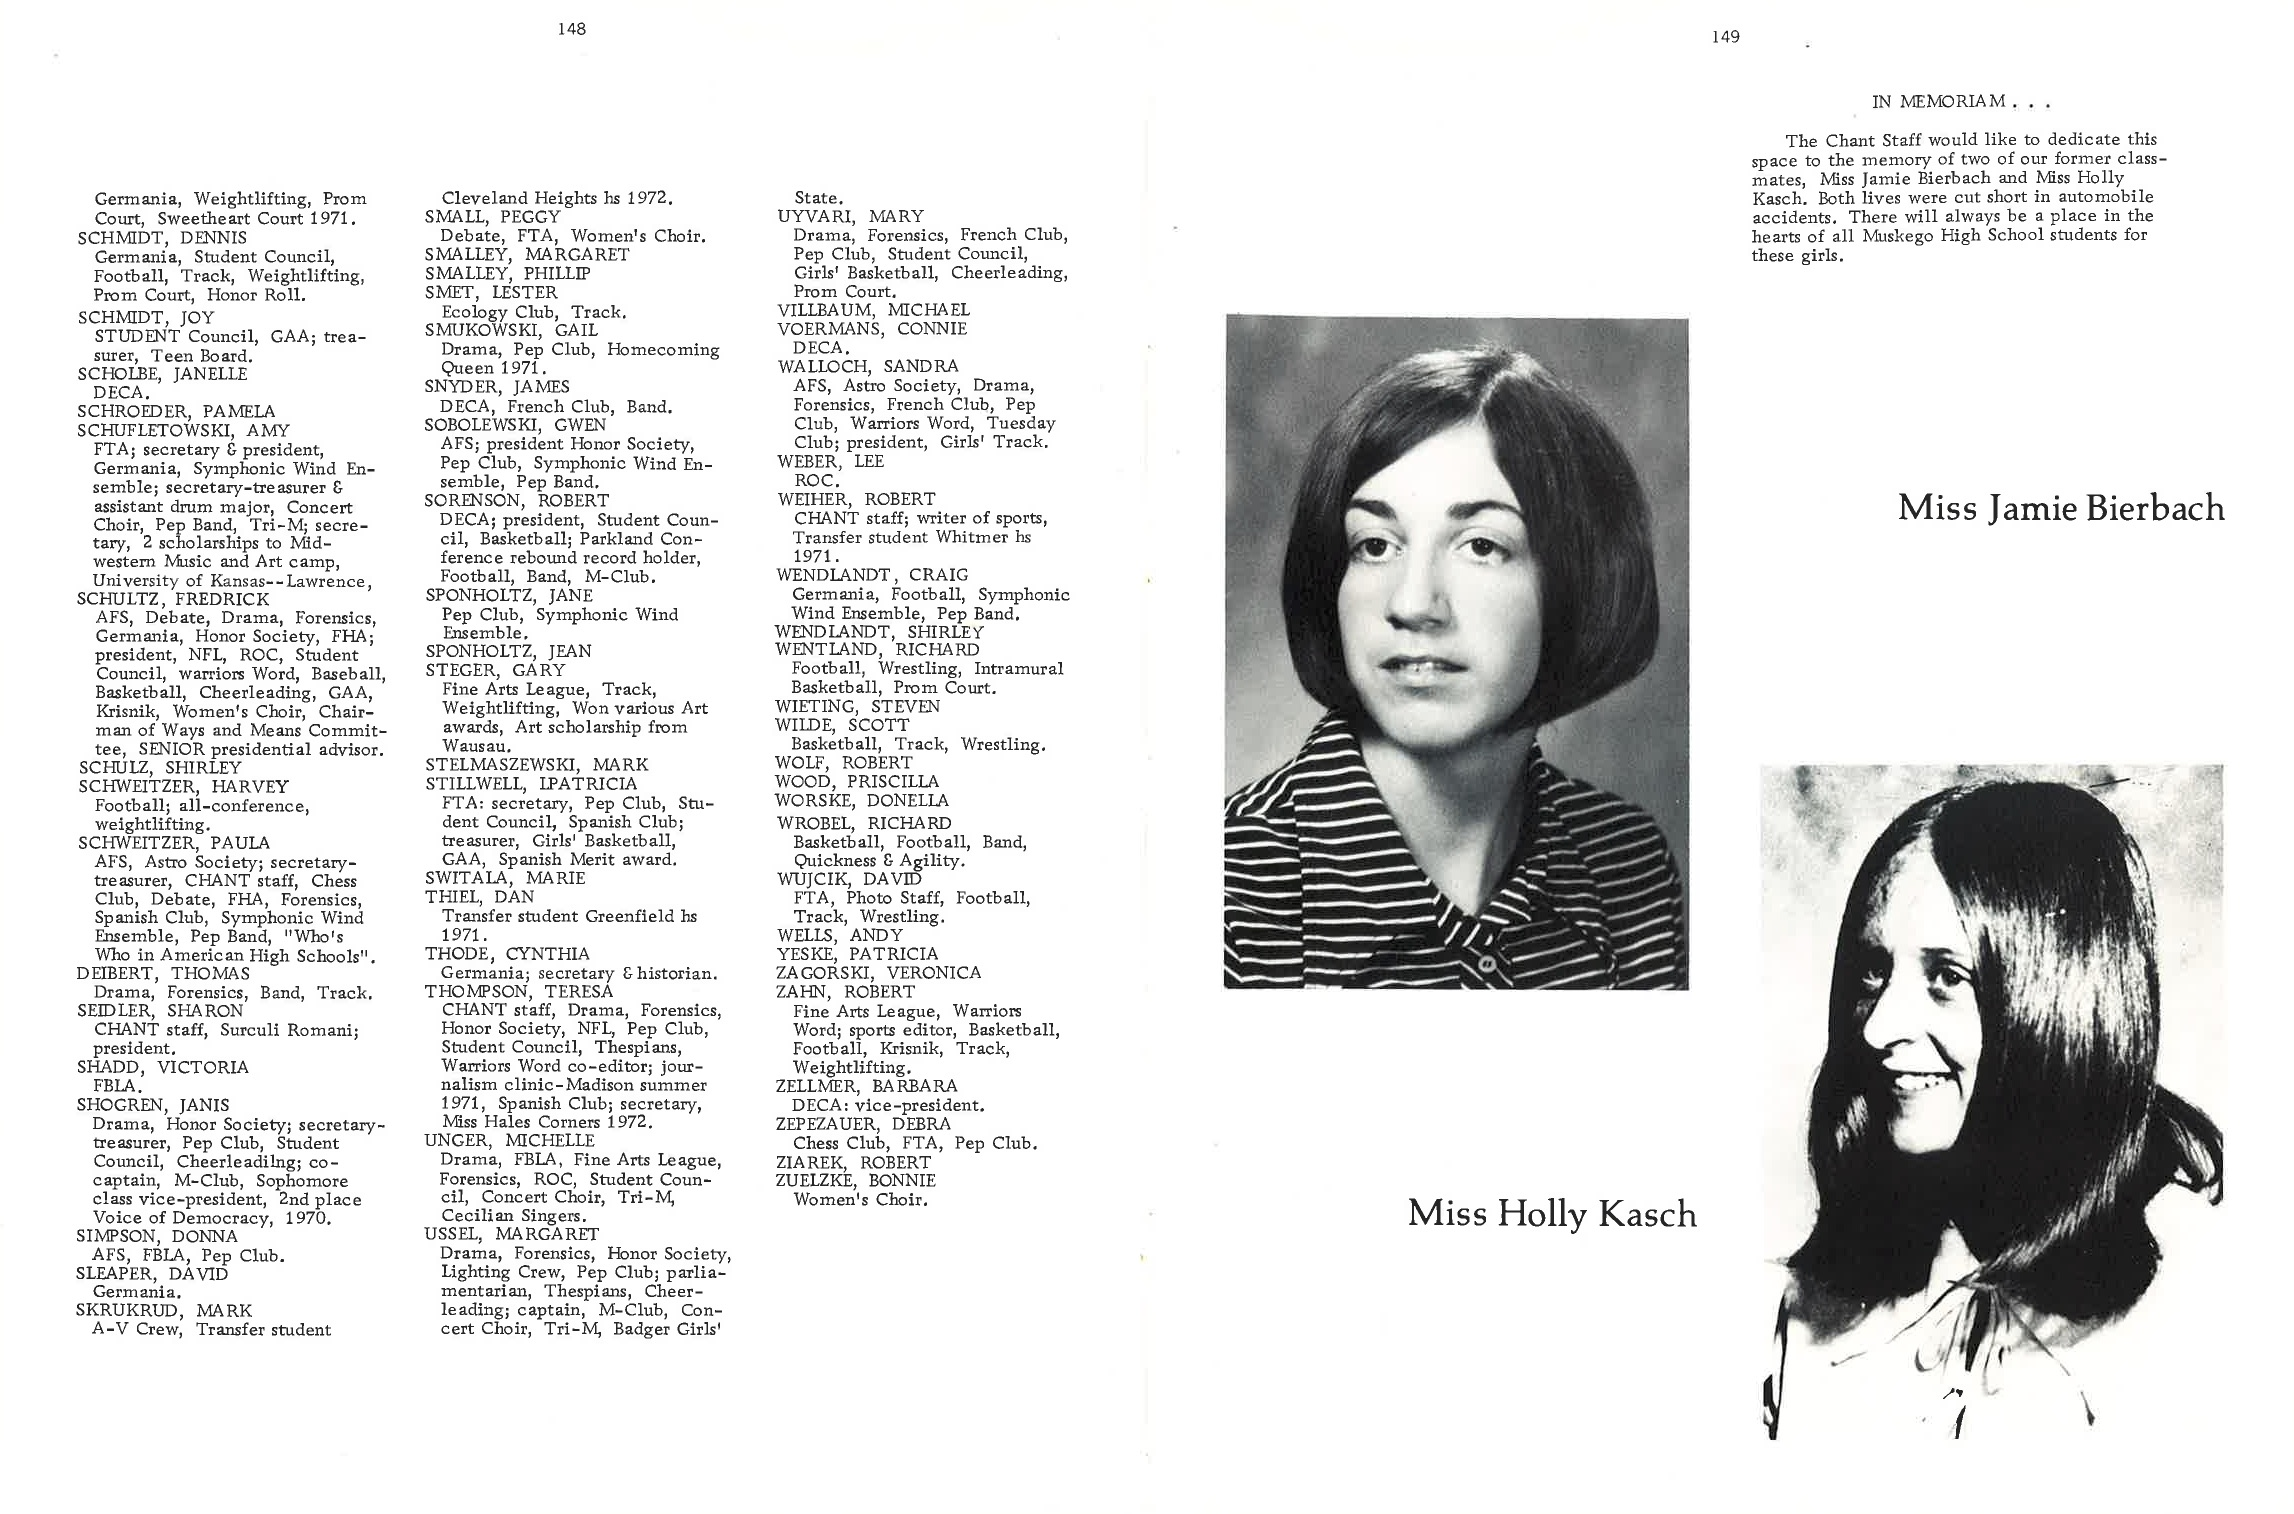 1972_Yearbook_148-149.jpg